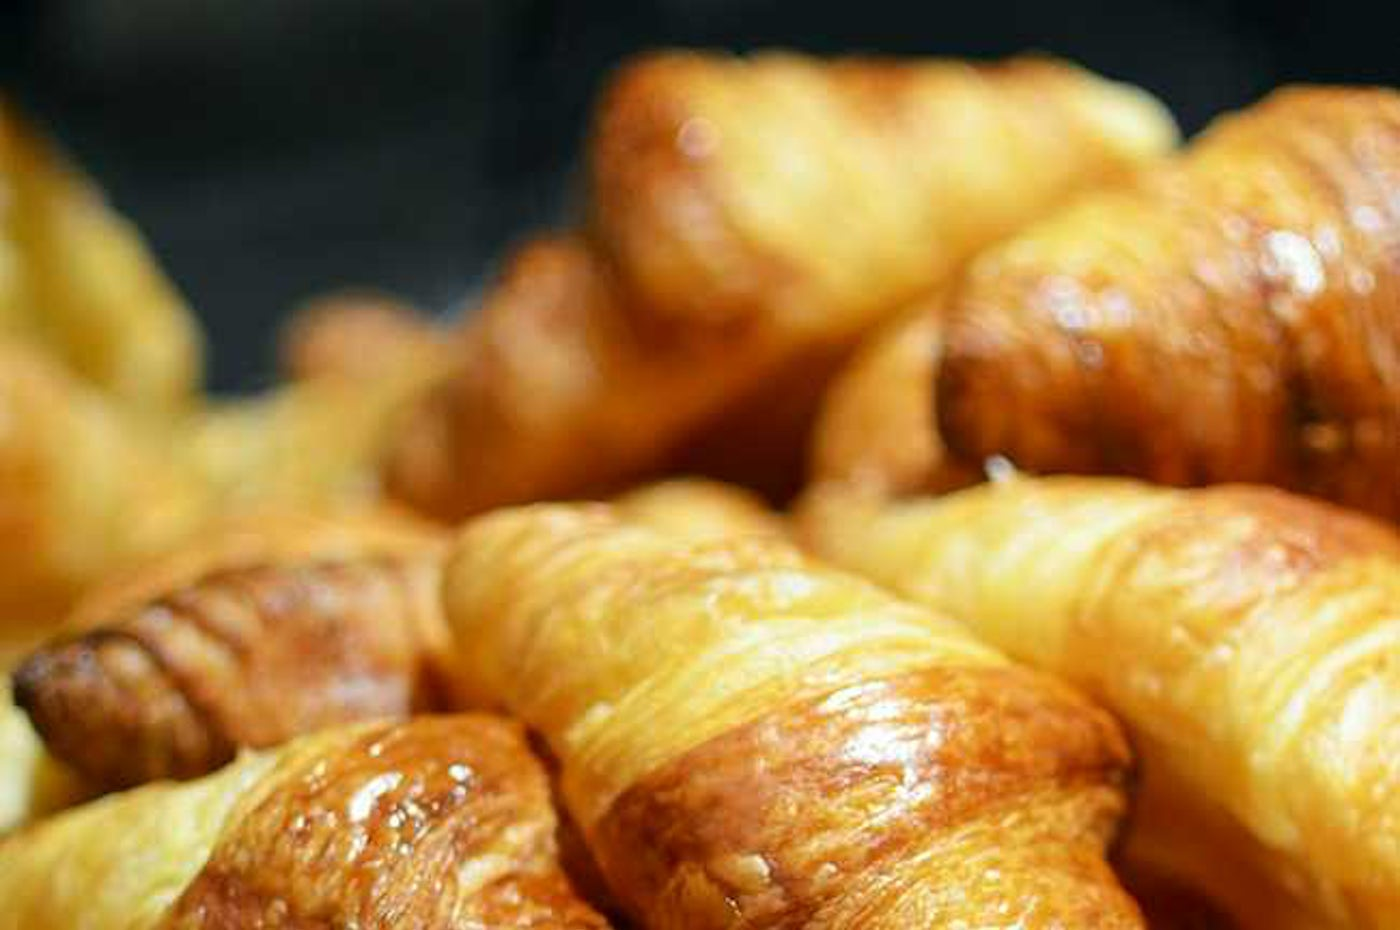 Buttery croissants at for breakfast at Cafe Vulcan , Ultimo